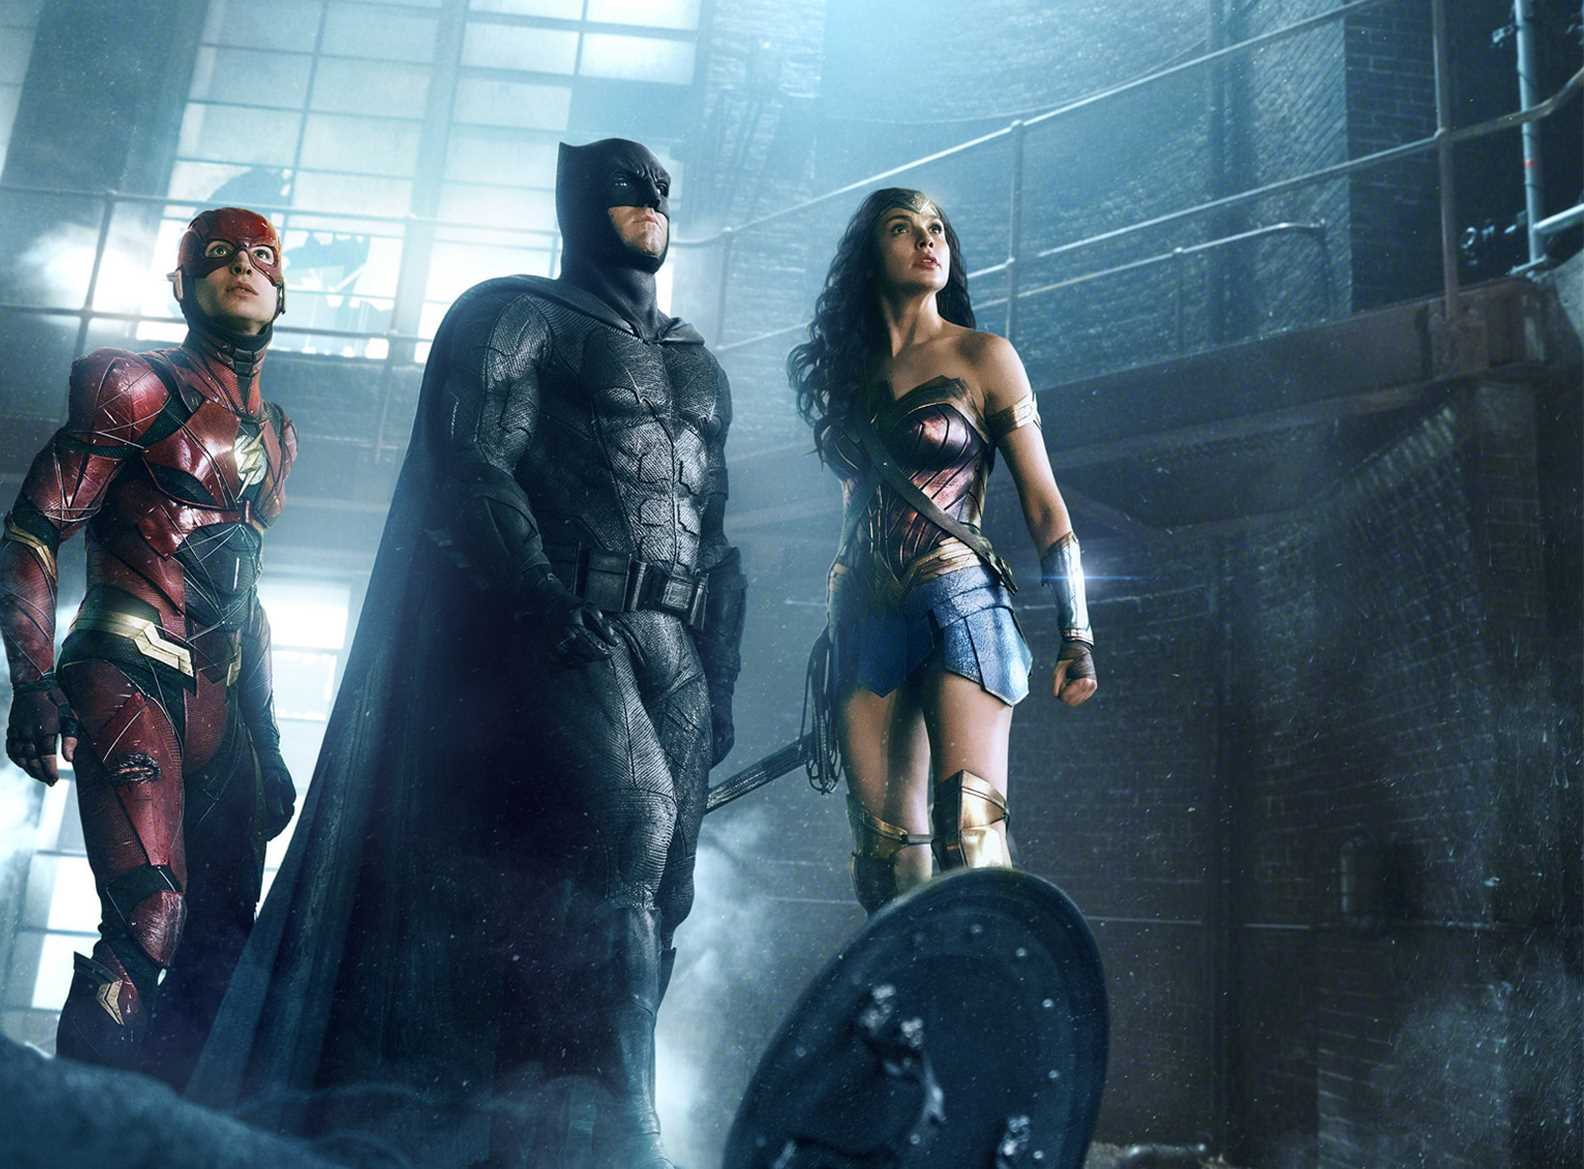 This is how many Justice League post-credits scenes there will be https://t.co/ekxUZB2Bz1 https://t.co/NI7nAJhvuF